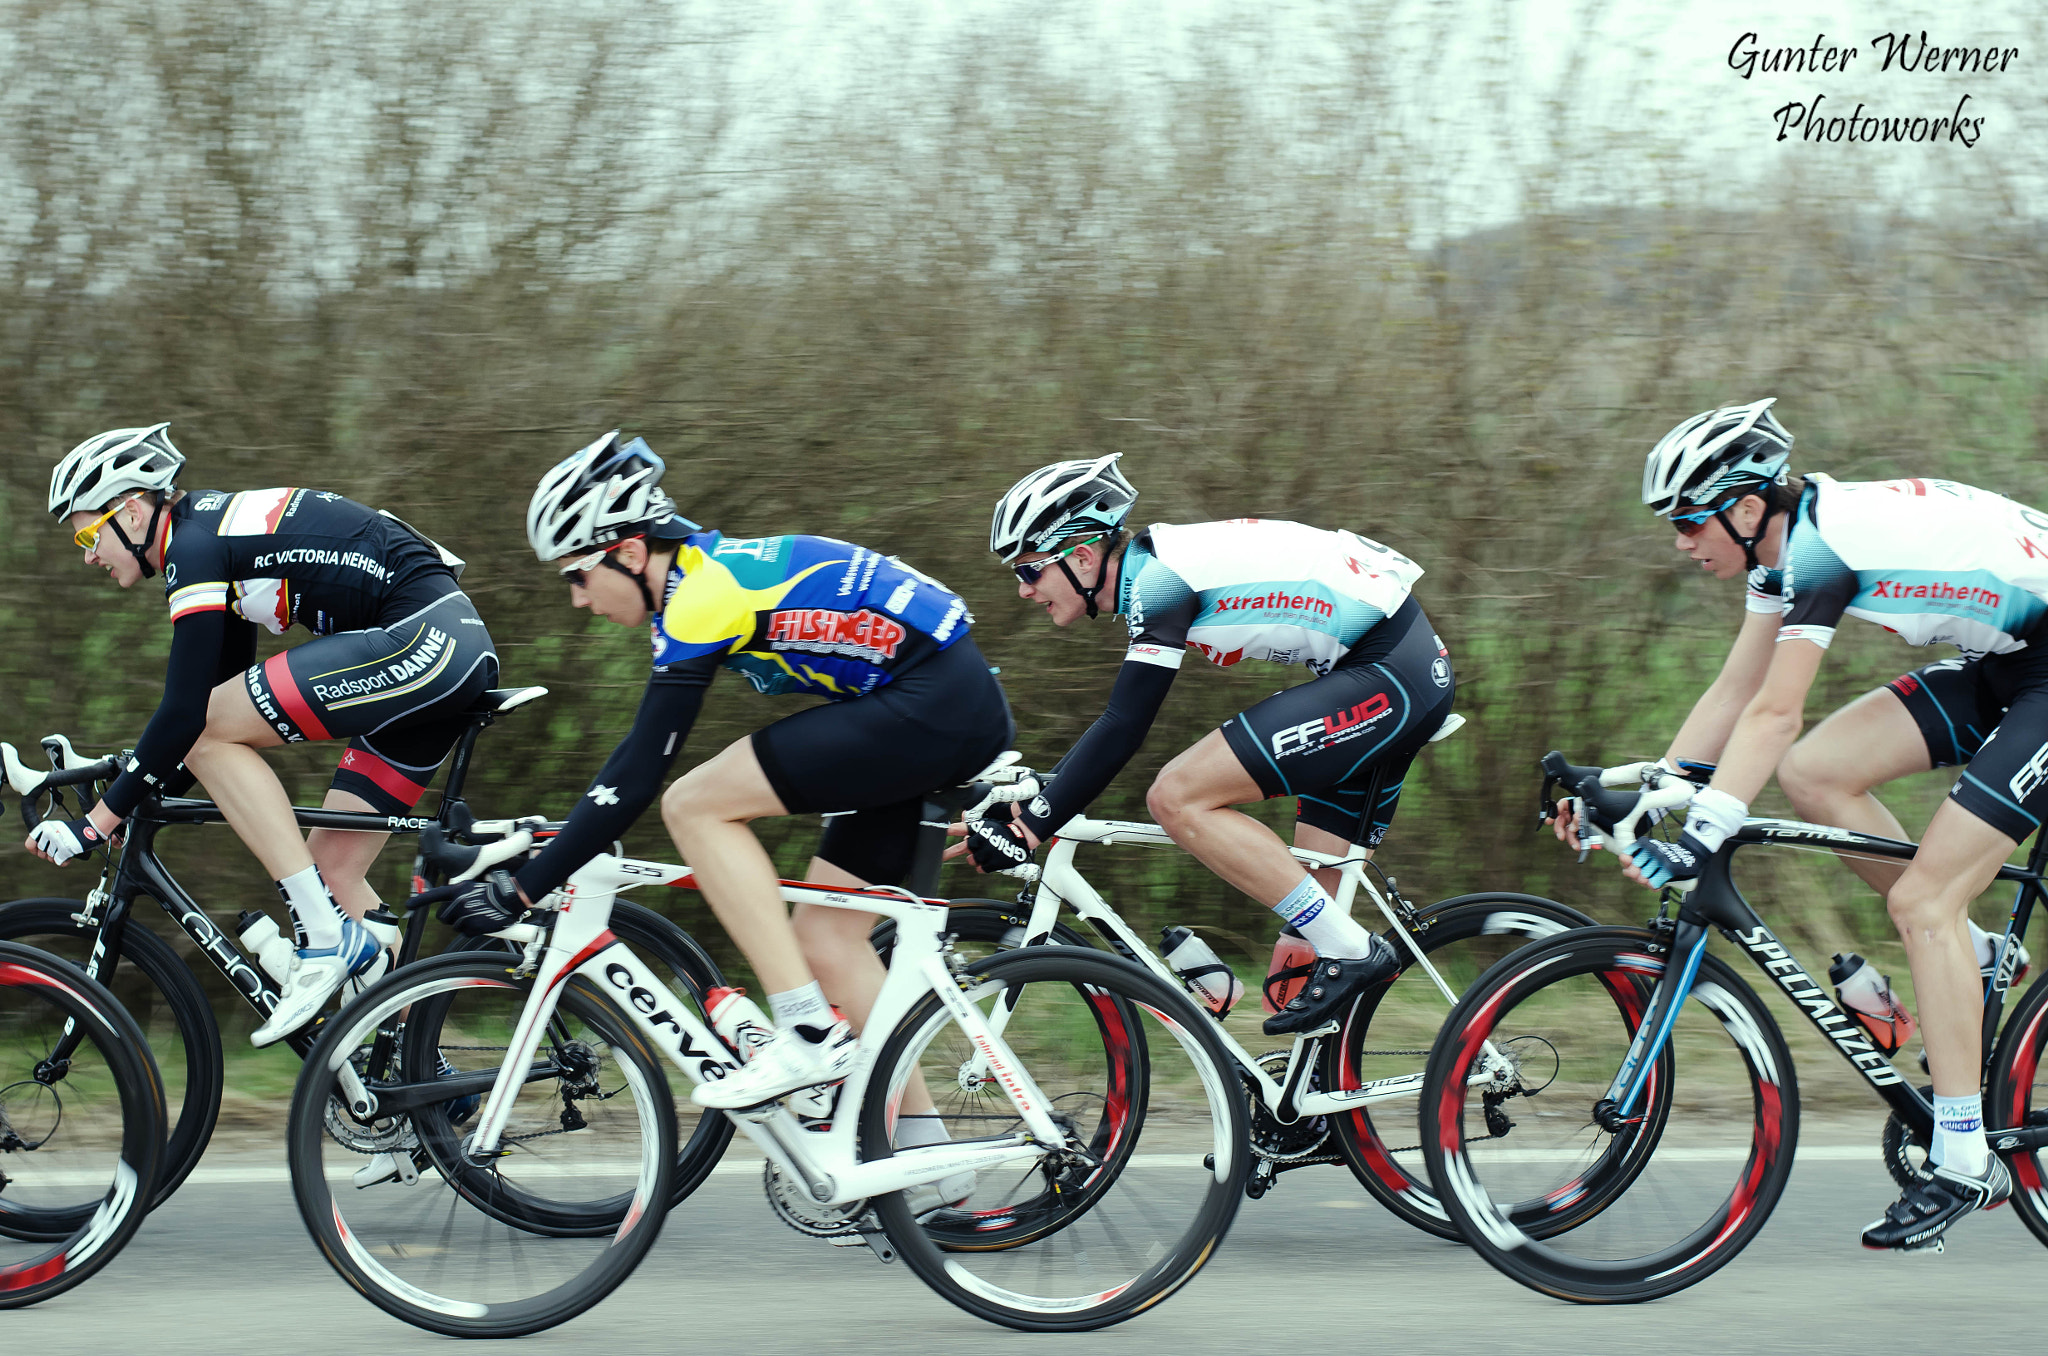 Photograph cycle race II by Gunter Werner on 500px